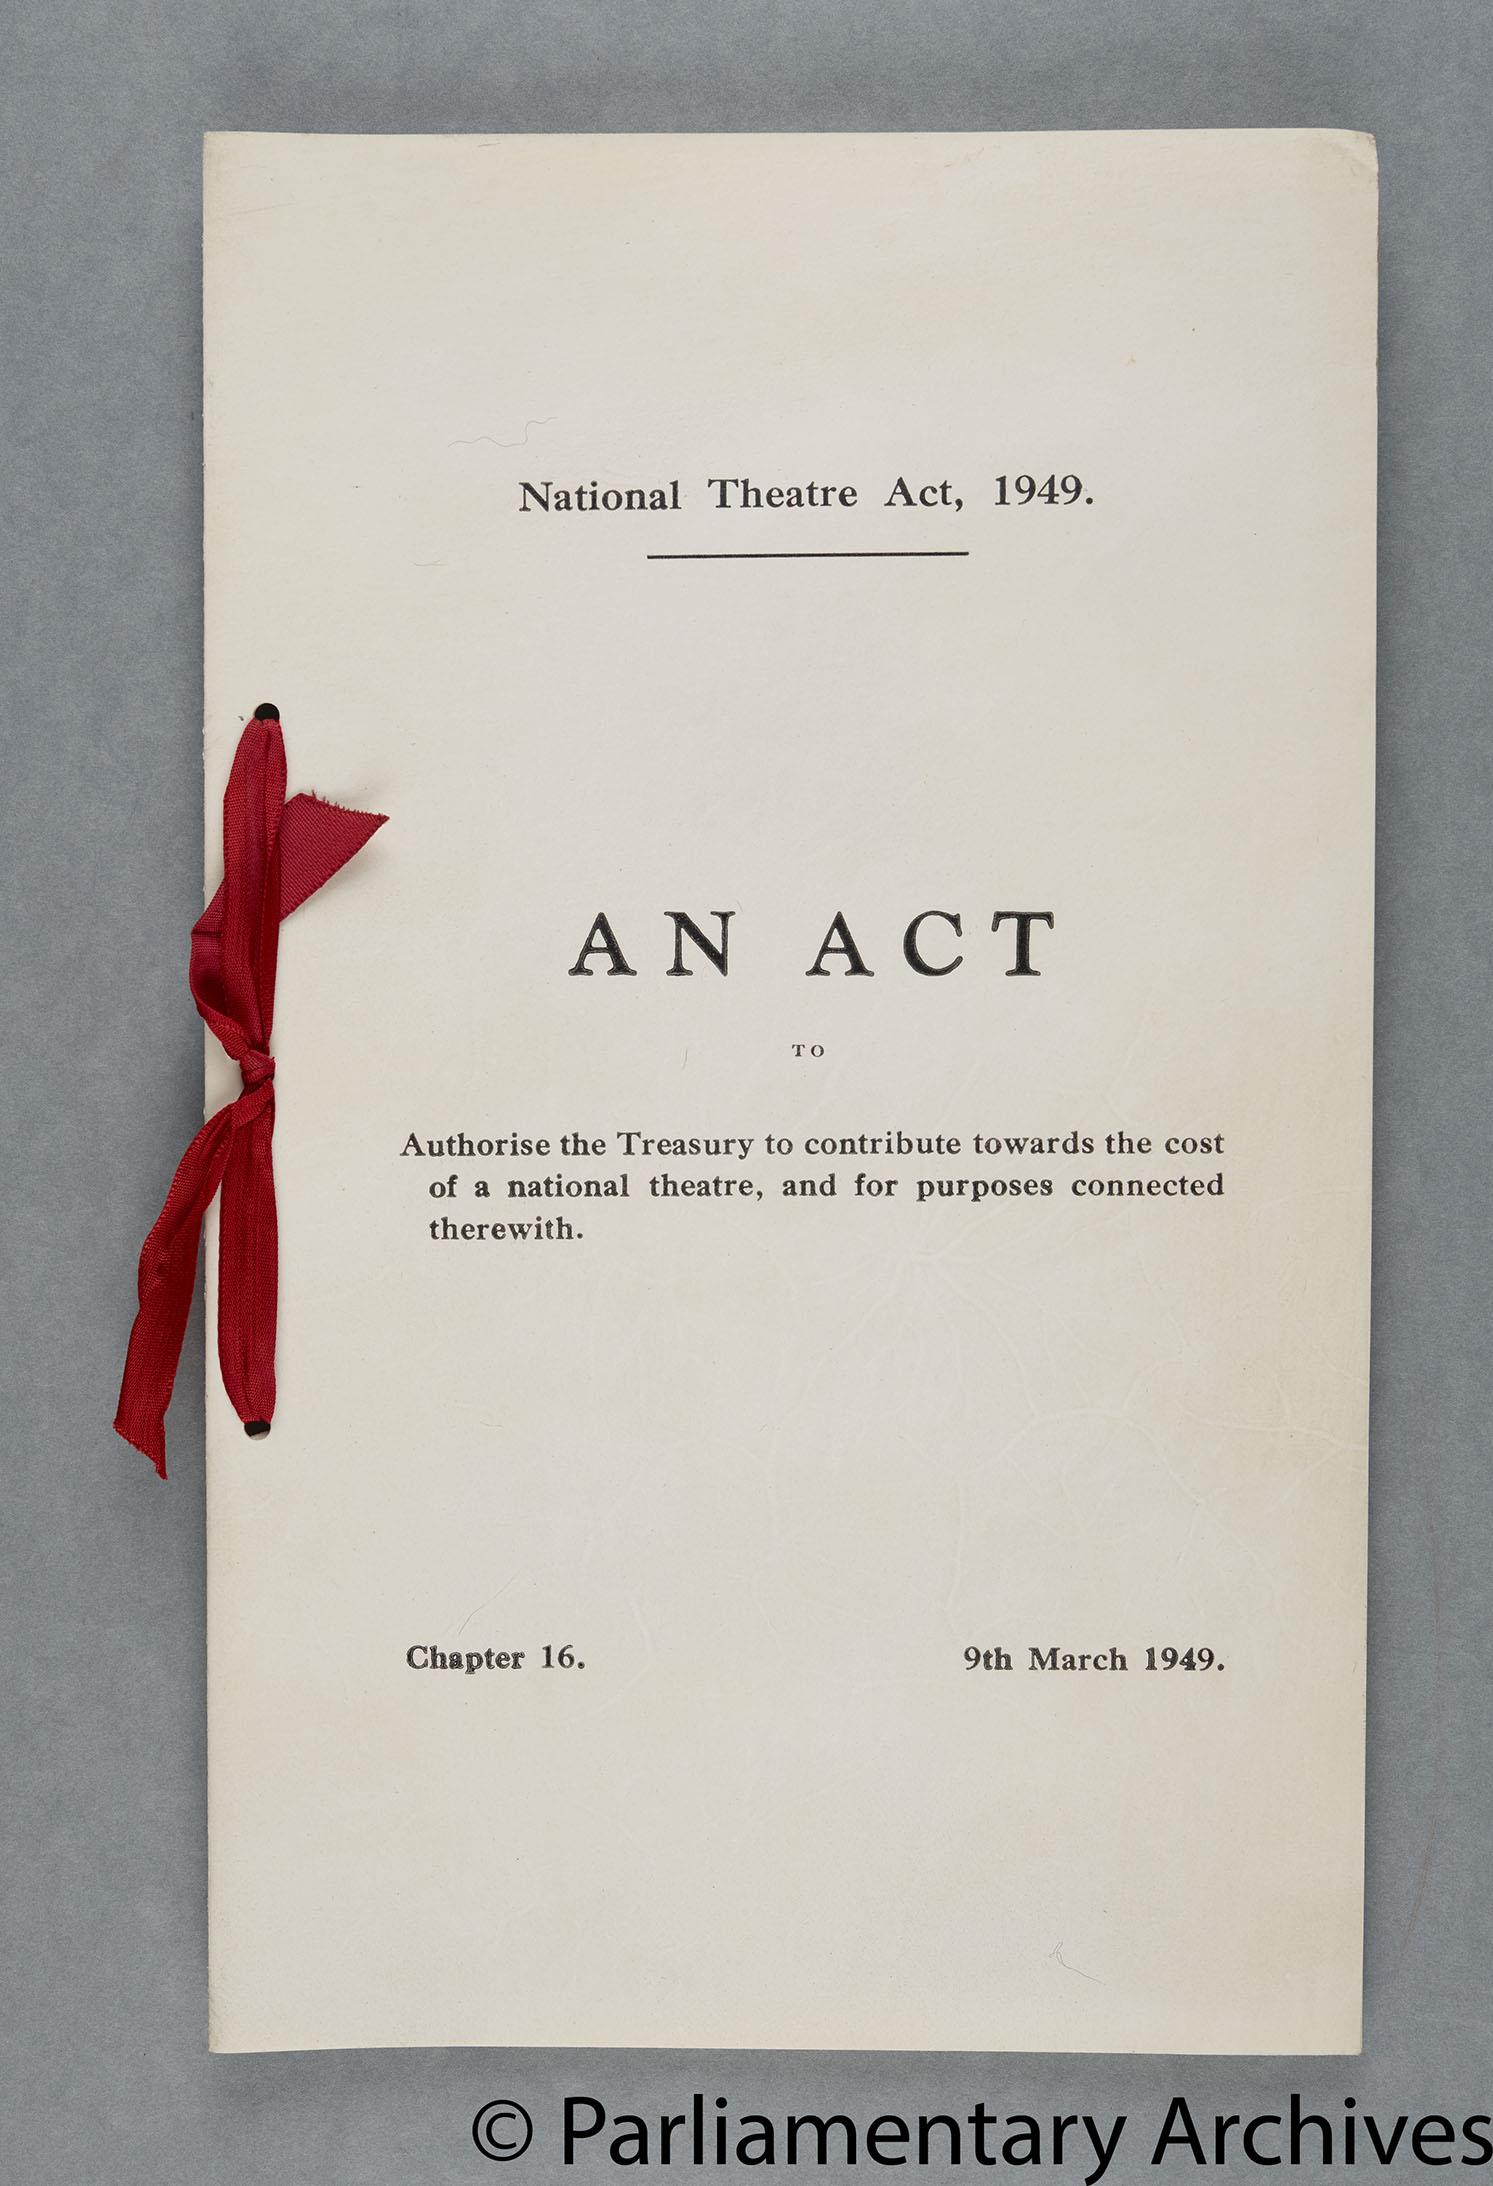 National Theatre Act